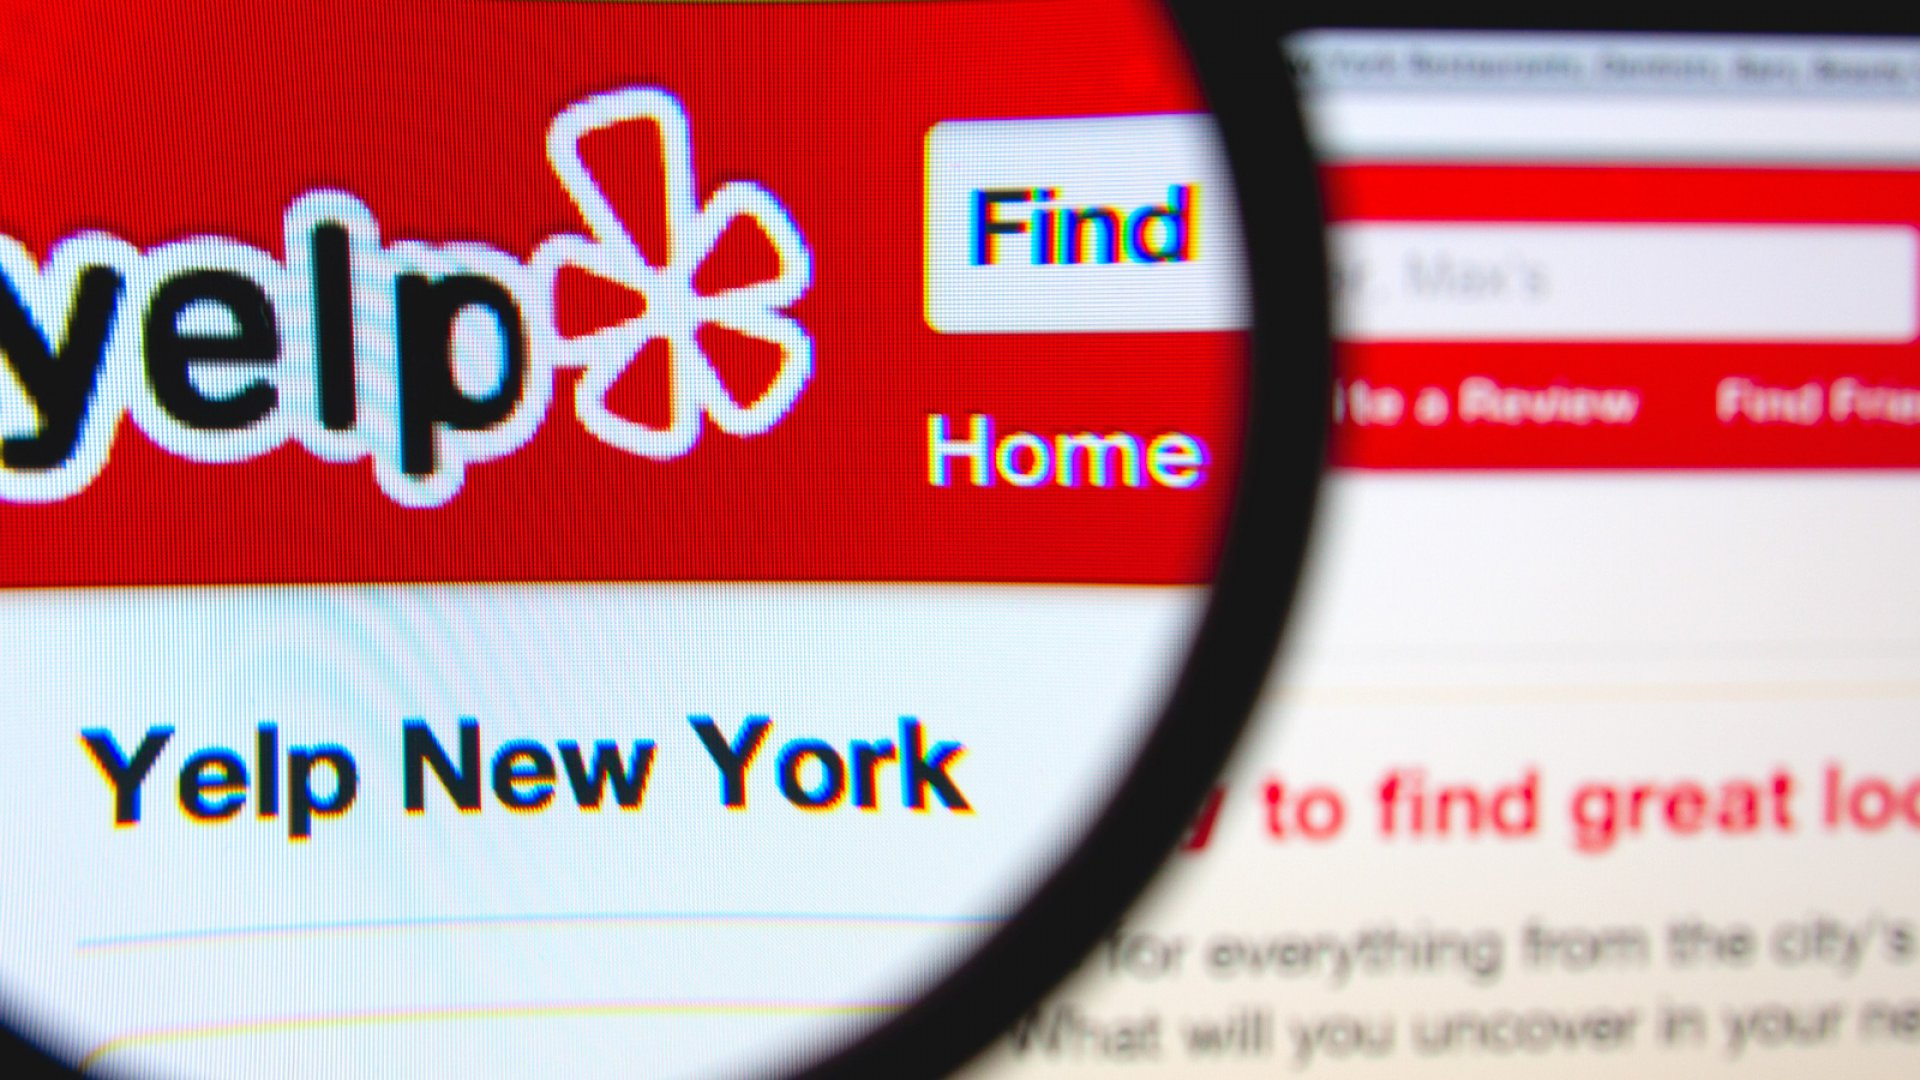 2Q Earnings Raise More Doubts About Yelp's Future